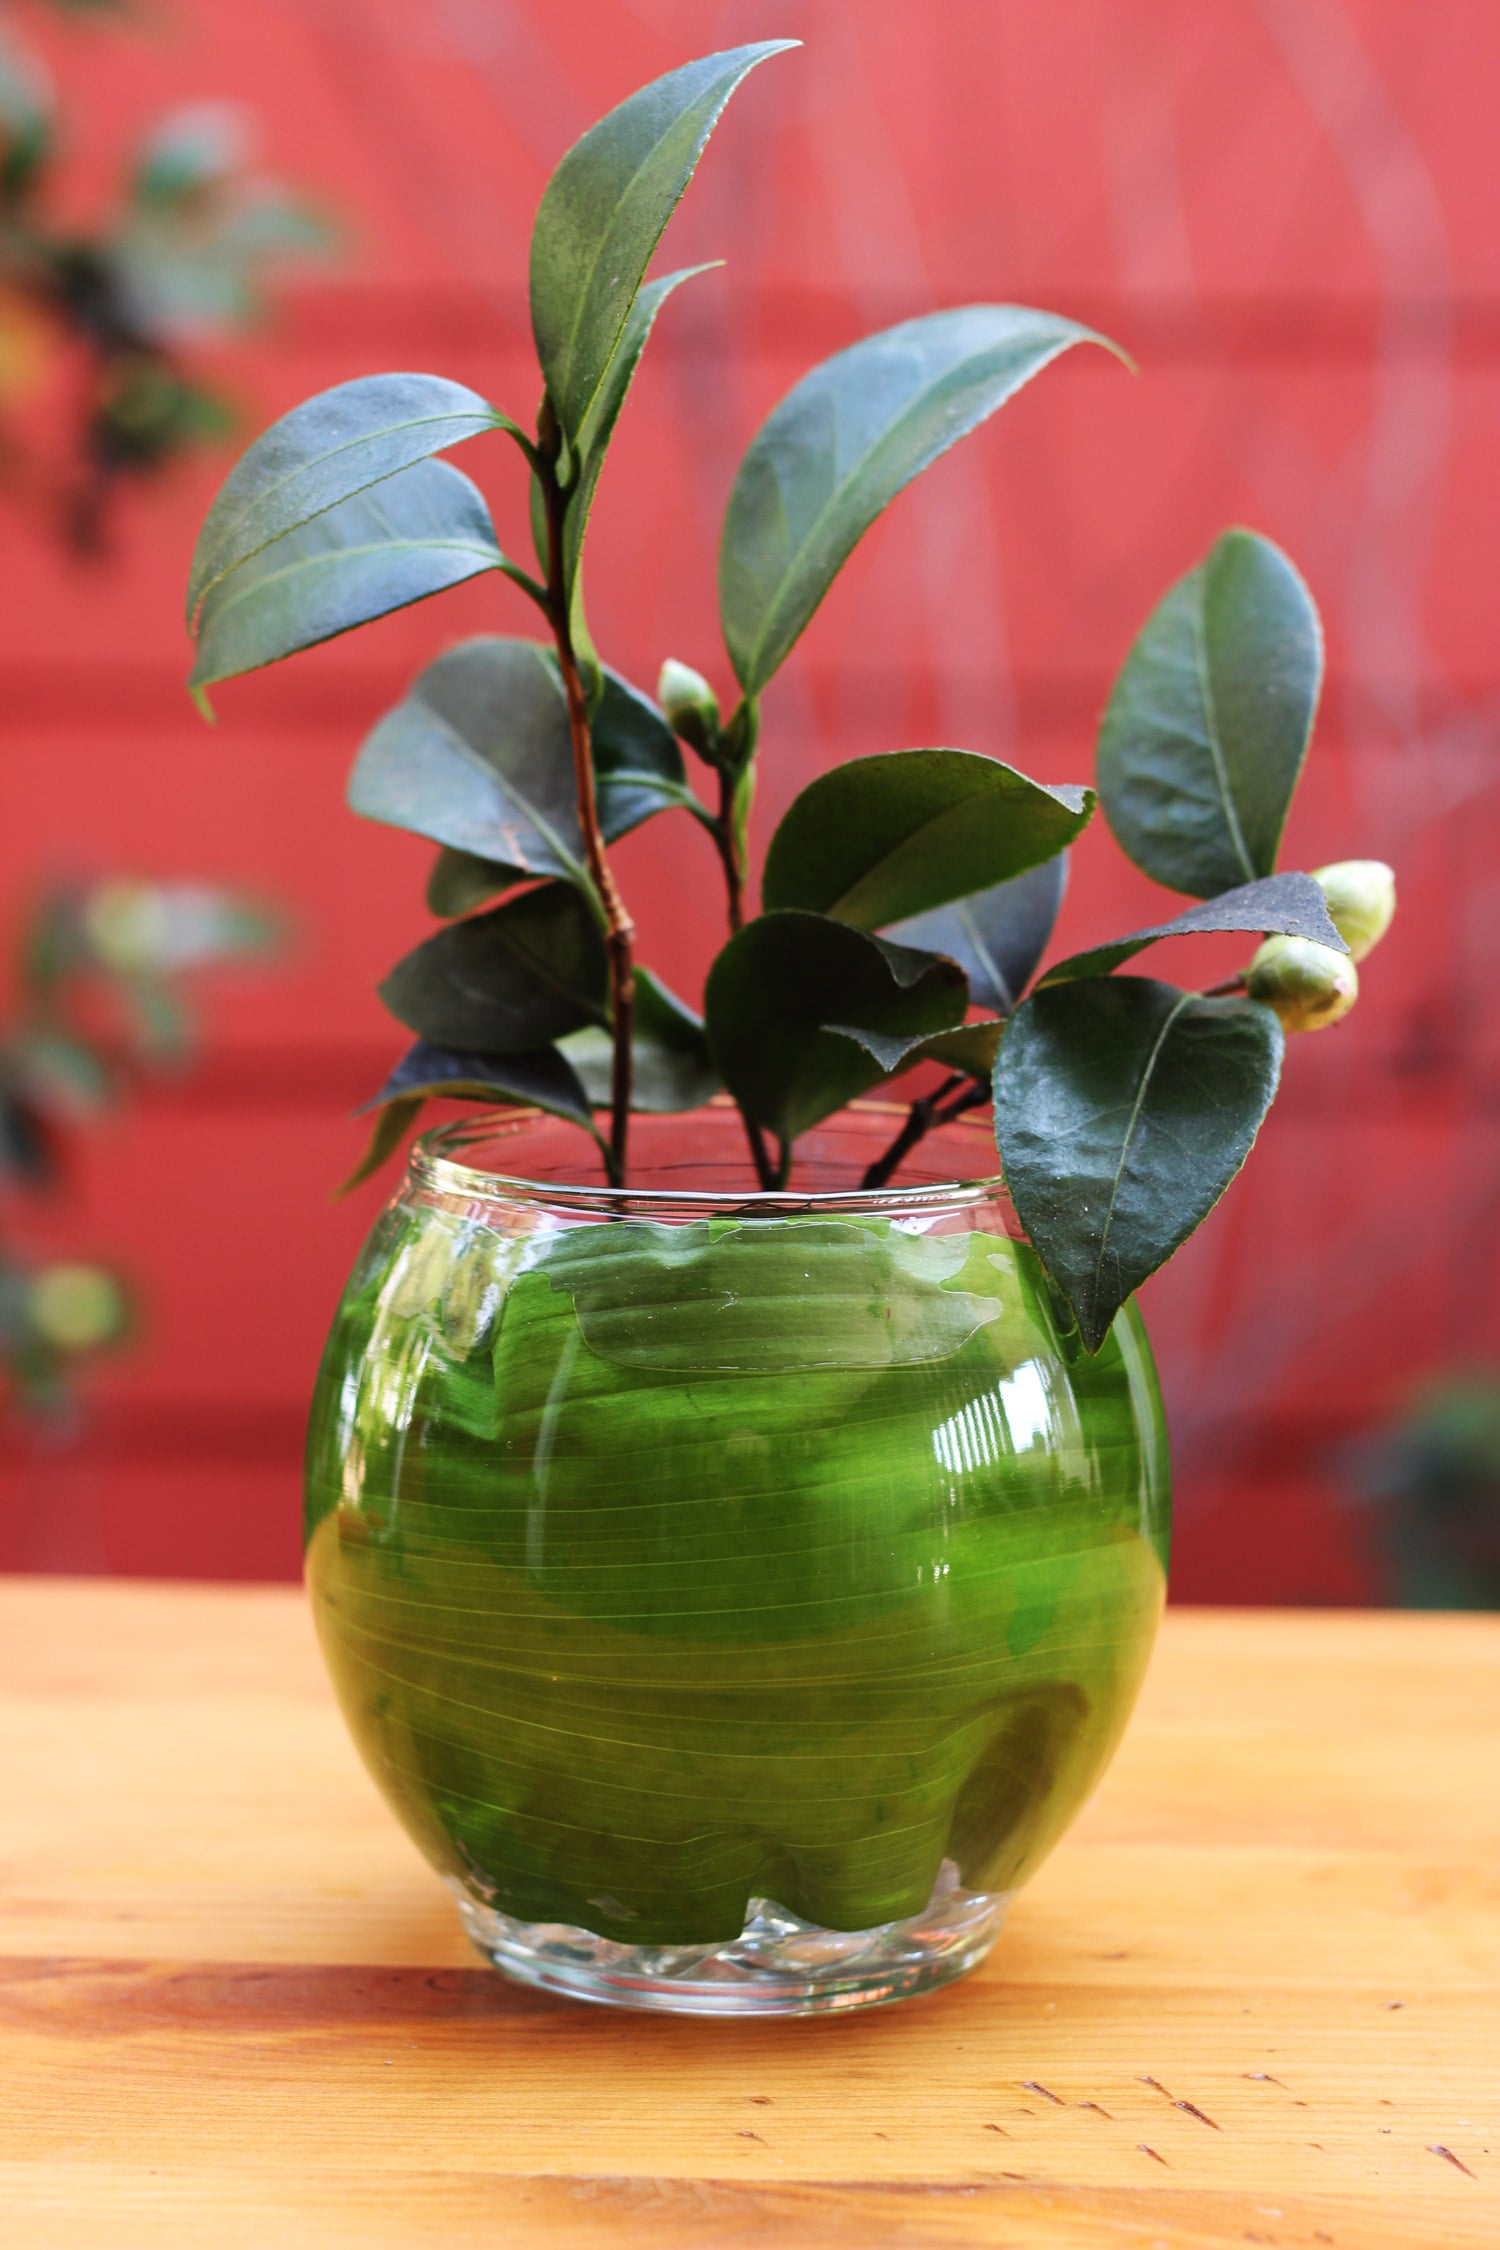 Put your camellia stem with buds in the back (or if you have 2, put one in back and one in front.)